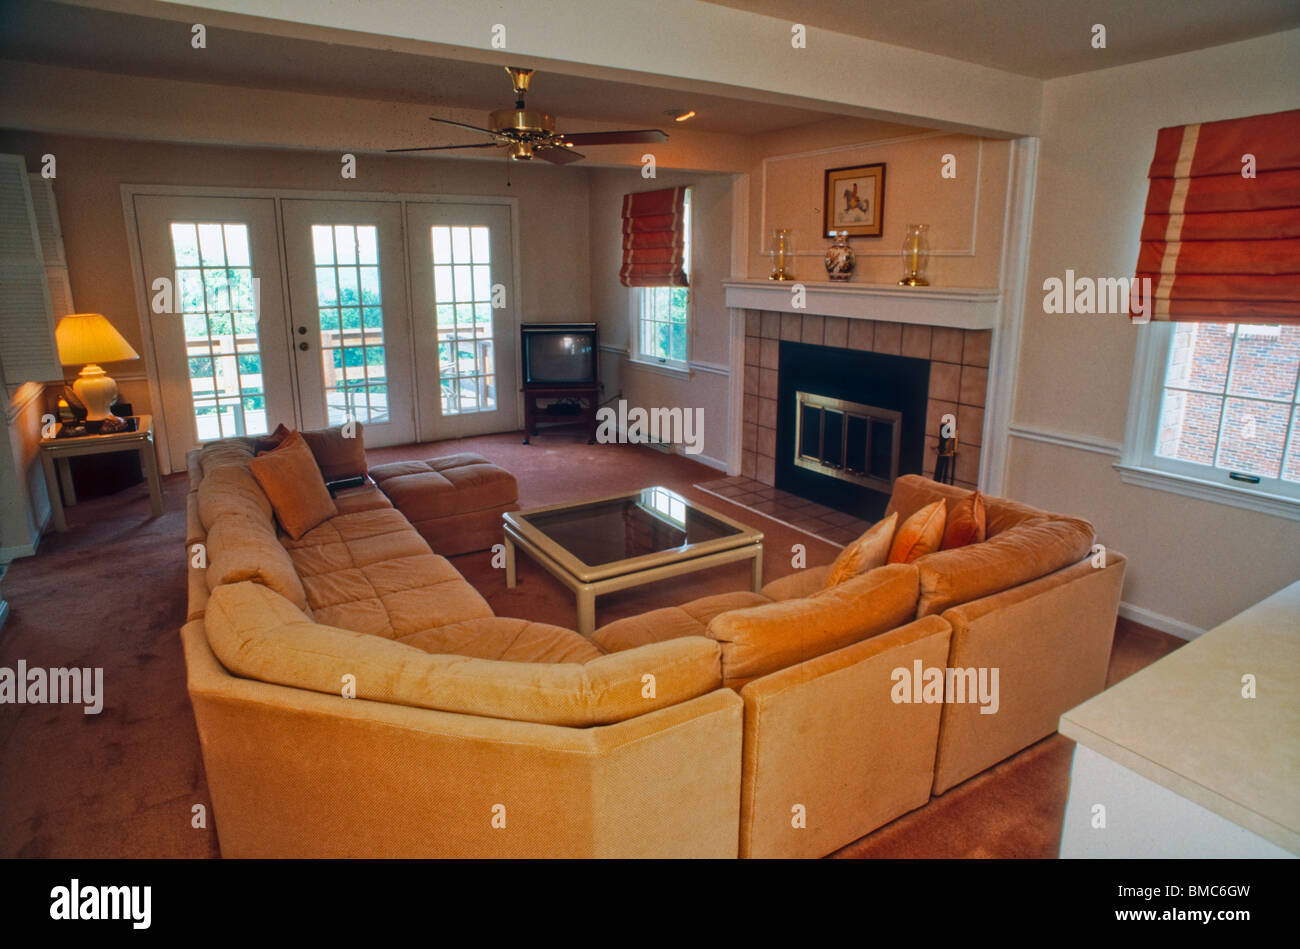 American Architecture Inside Suburban House Living Room